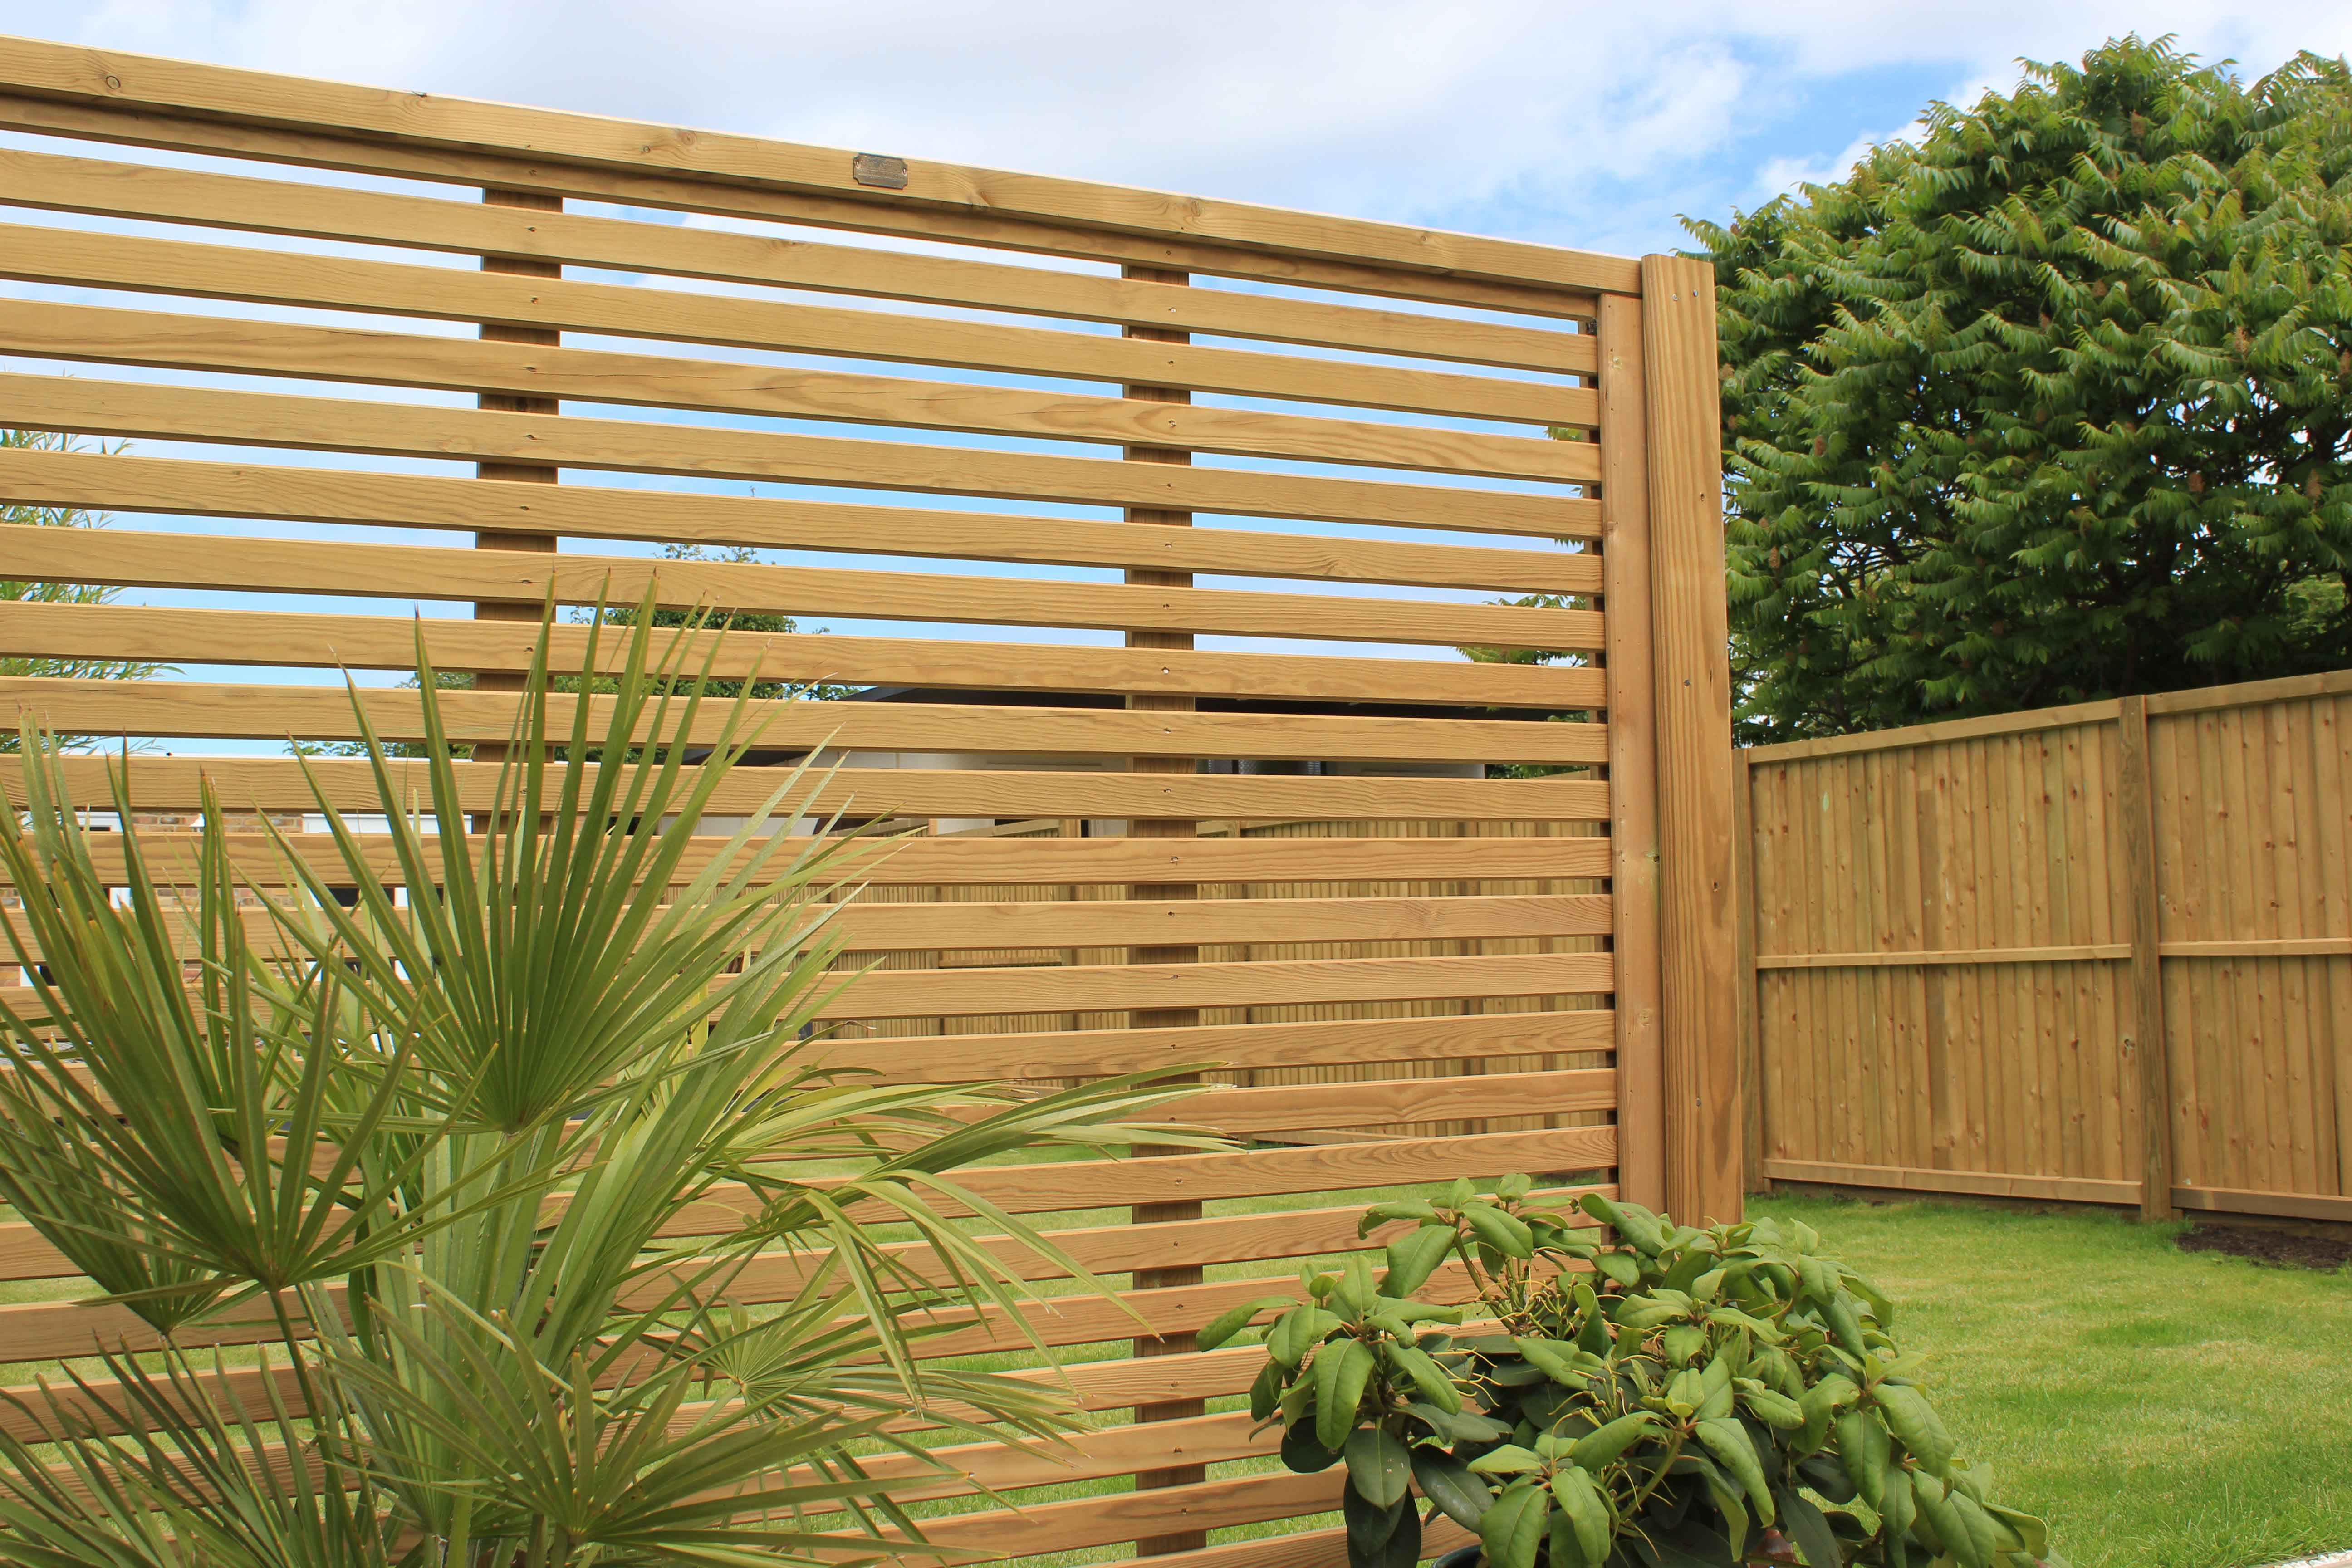 Fence Extensions Lattice Factory Fence Design Privacy Fence Designs Lattice Fence